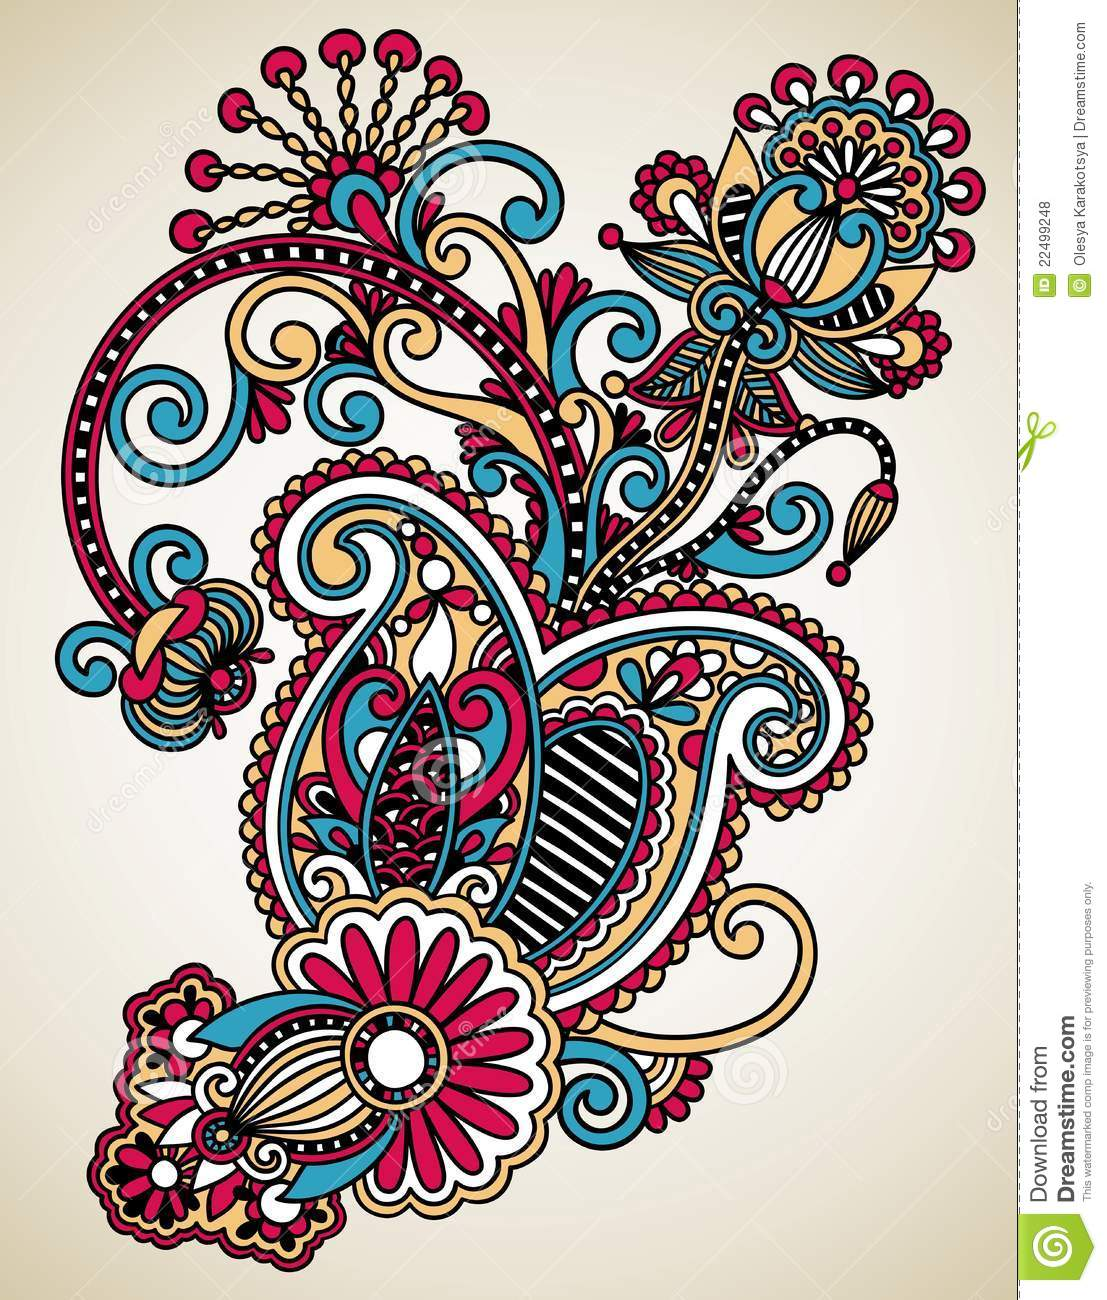 Floral Art Line Design : Line art ornate flower design stock illustration